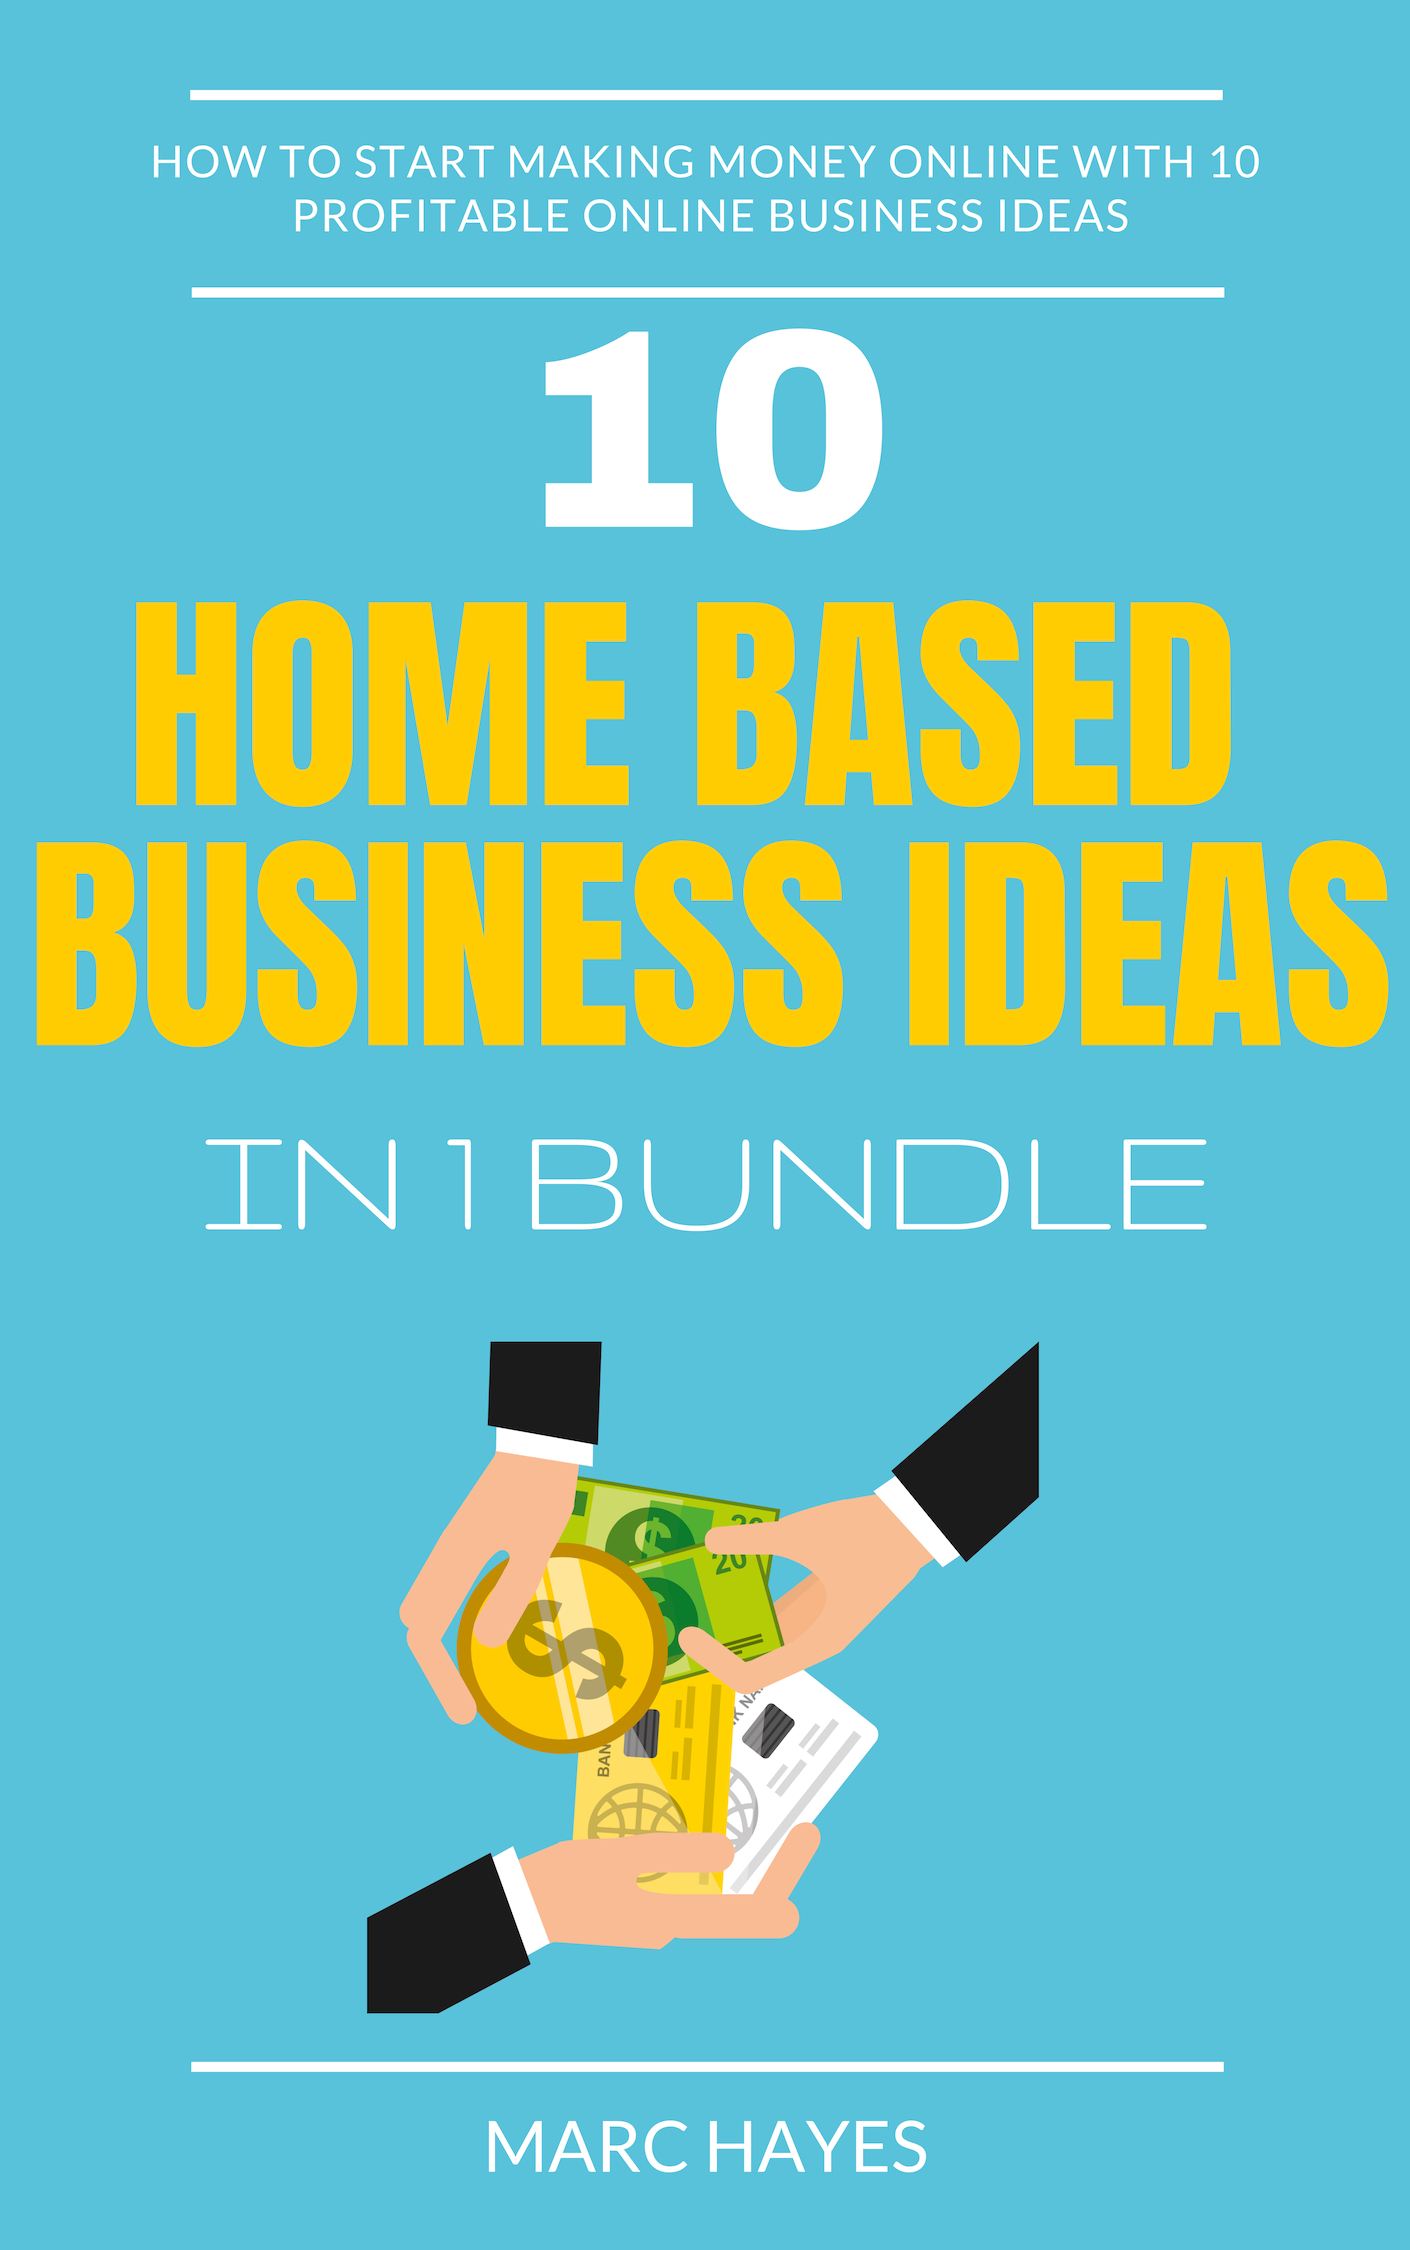 Smashwords Home Based Business Ideas 10 In 1 Bundle How To